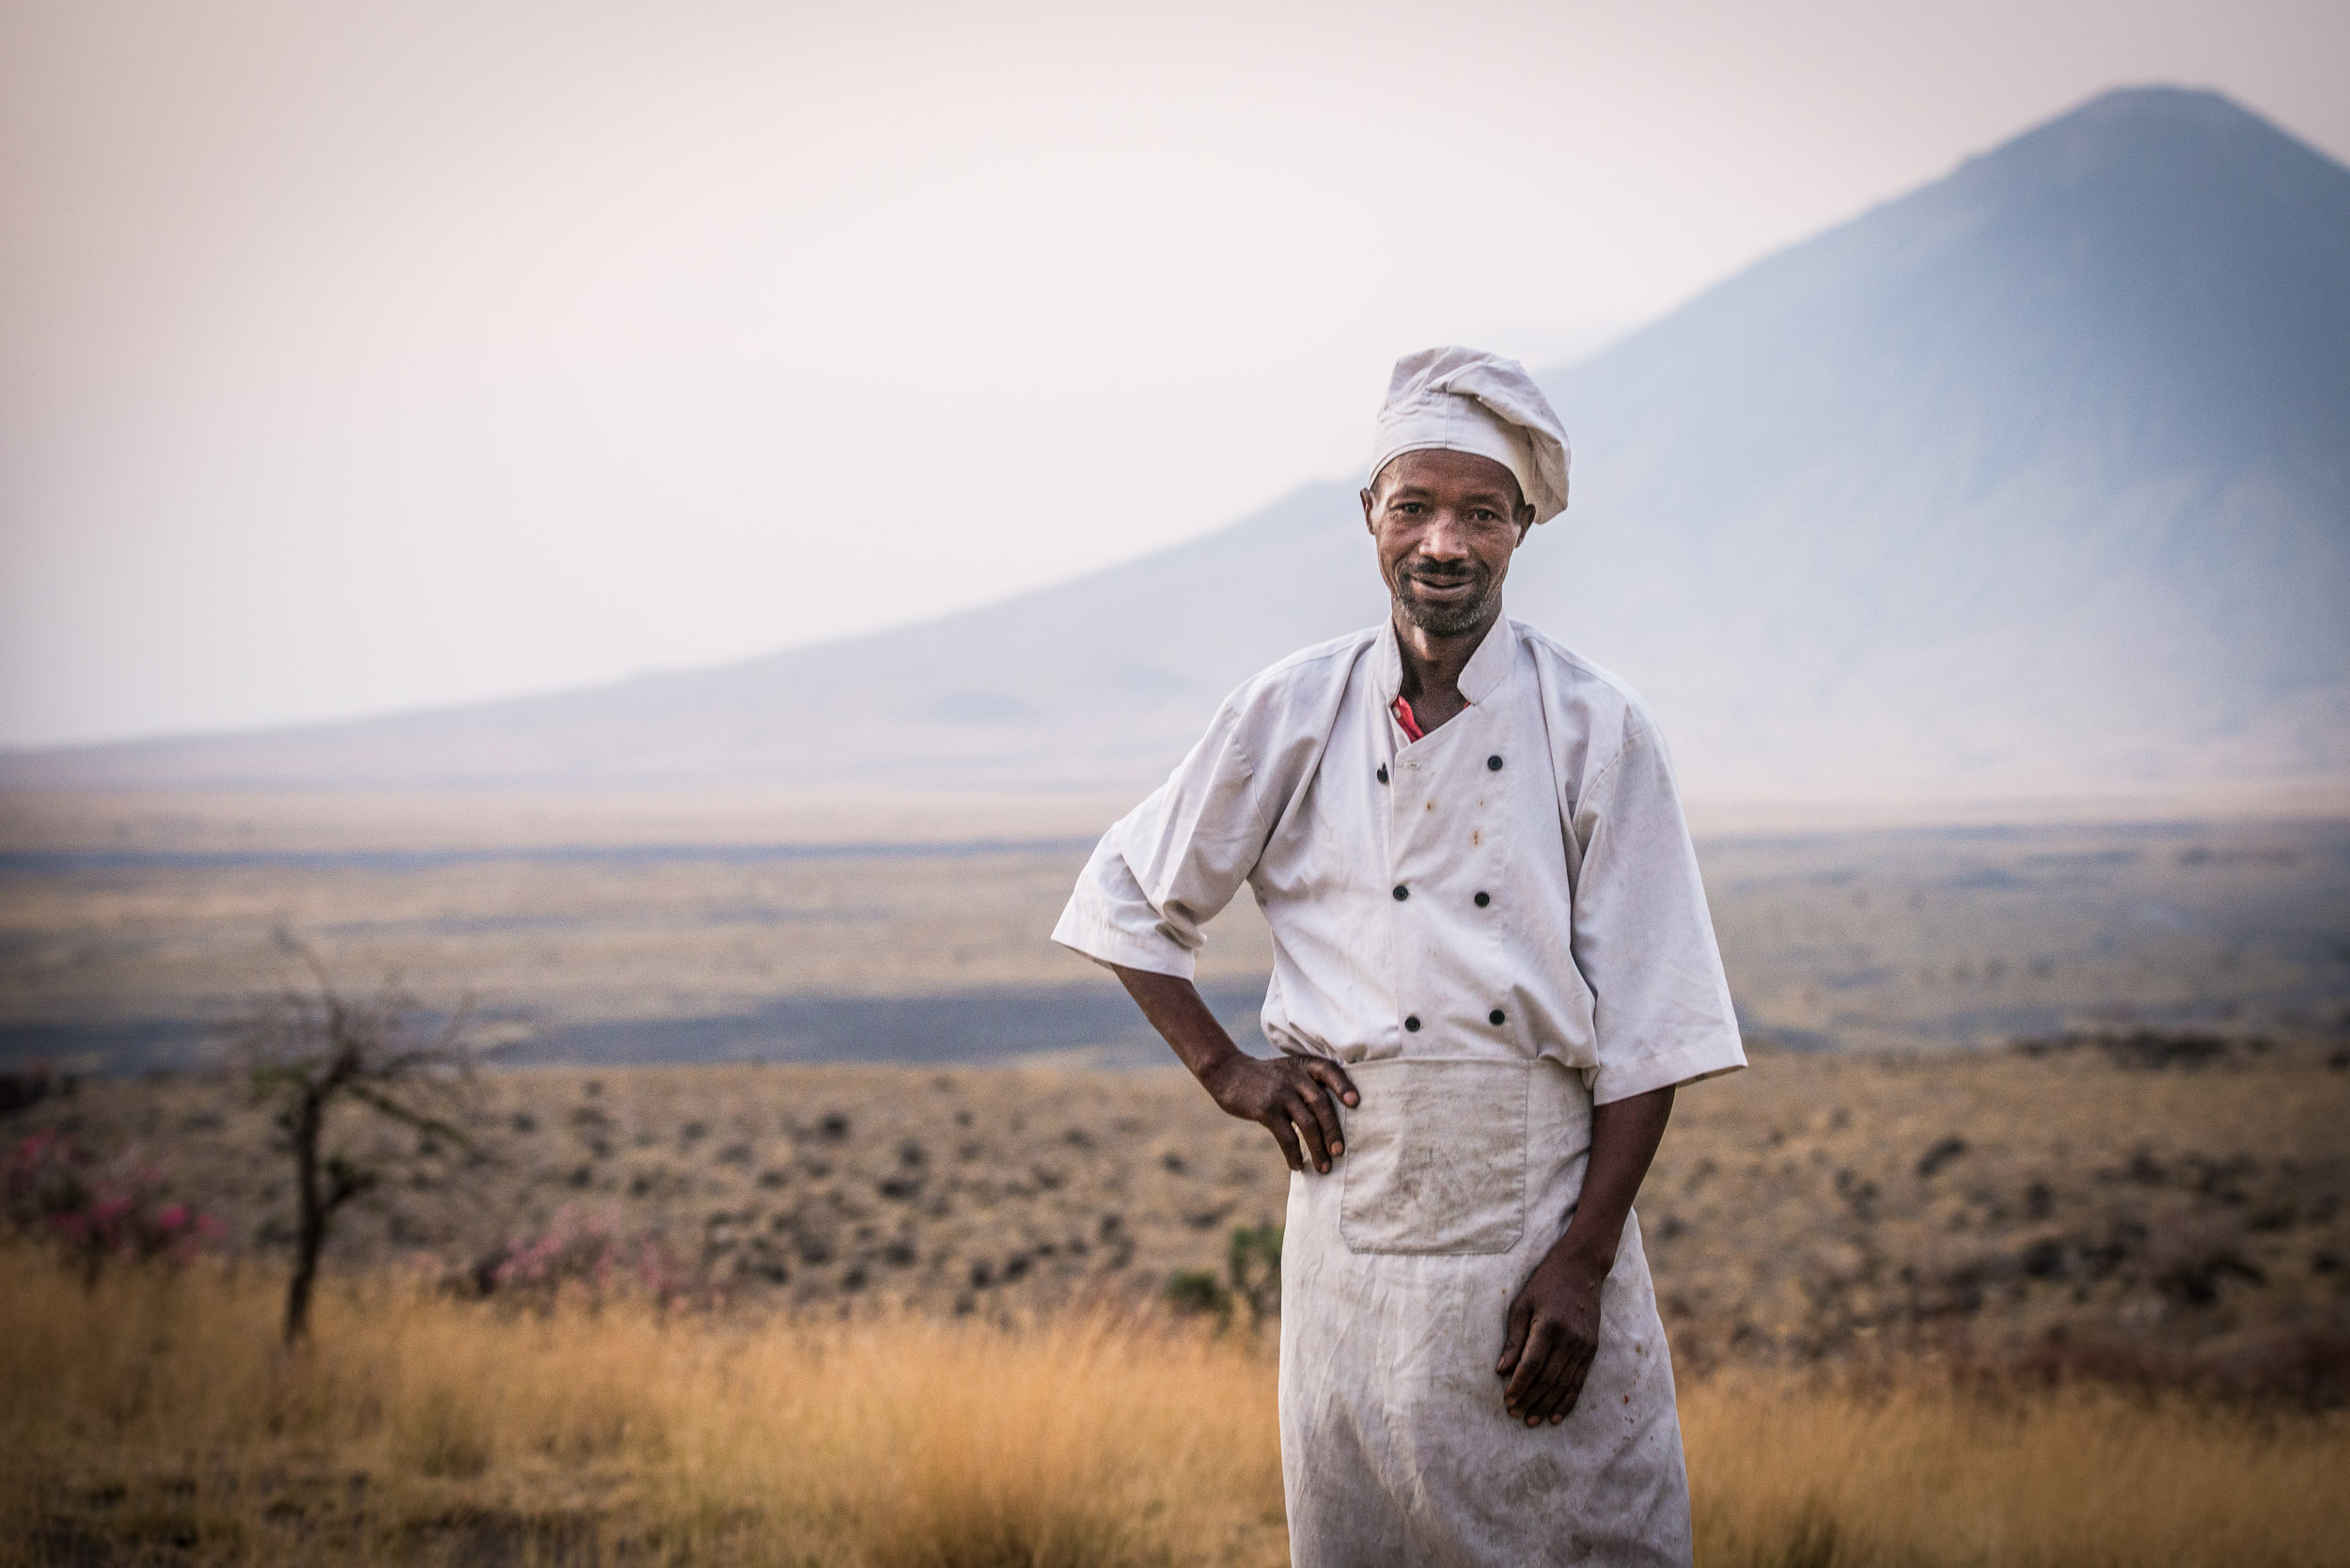 Tanzania Chef at dawn - Travel - Photo credit Nicola Bailey.jpg